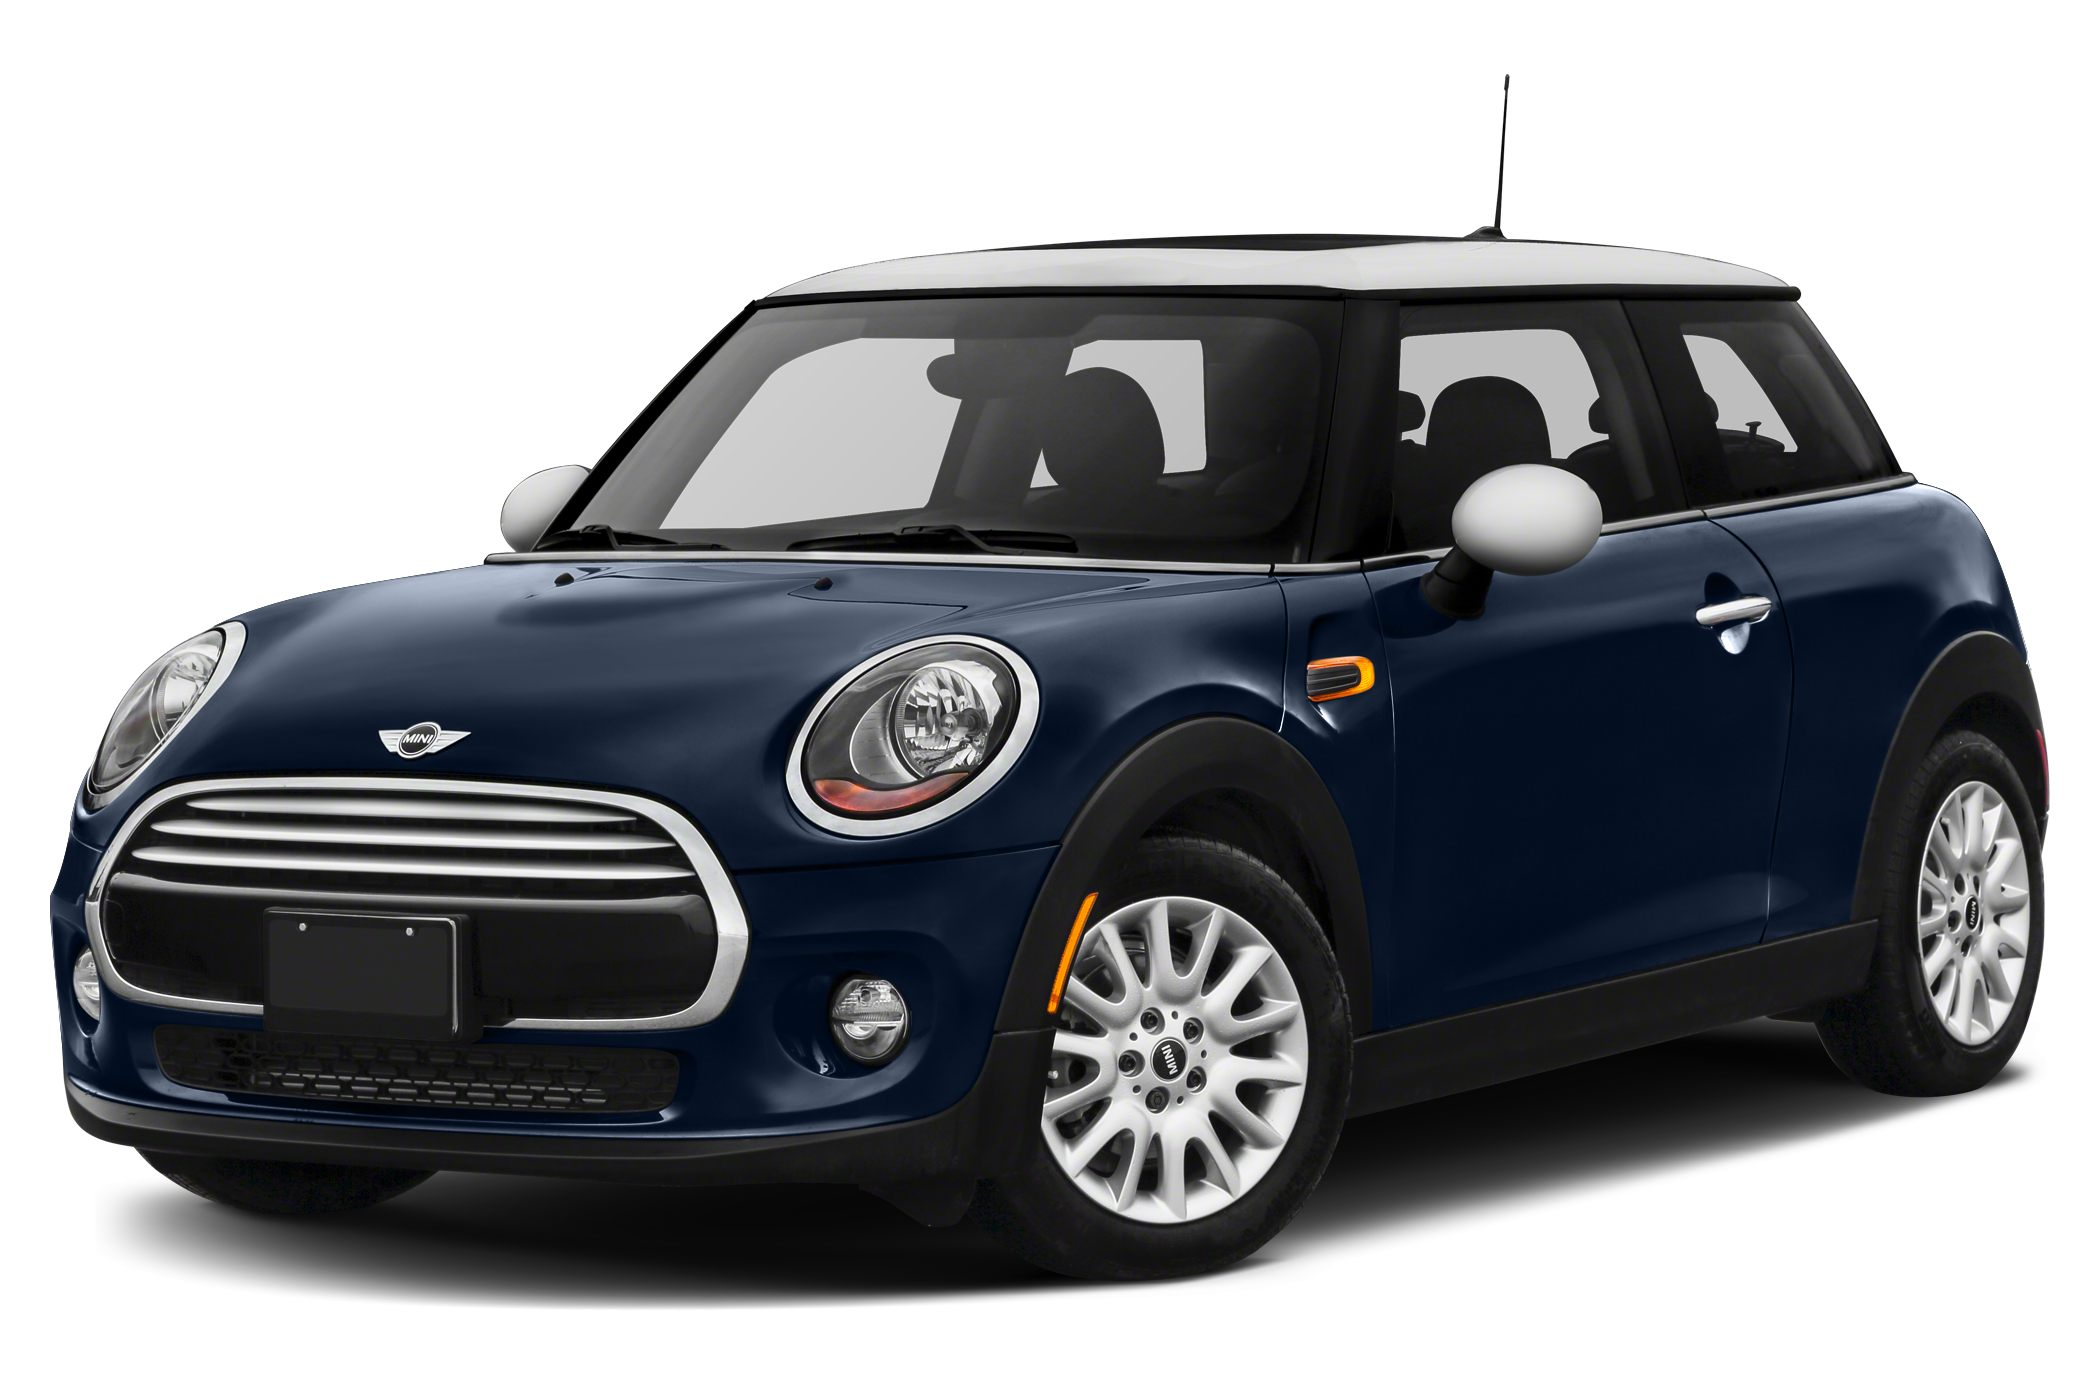 2015 MINI Cooper Hardtop WE SELL OUR VEHICLES AT WHOLESALE PRICES AND STAND BEHIND OUR CARS